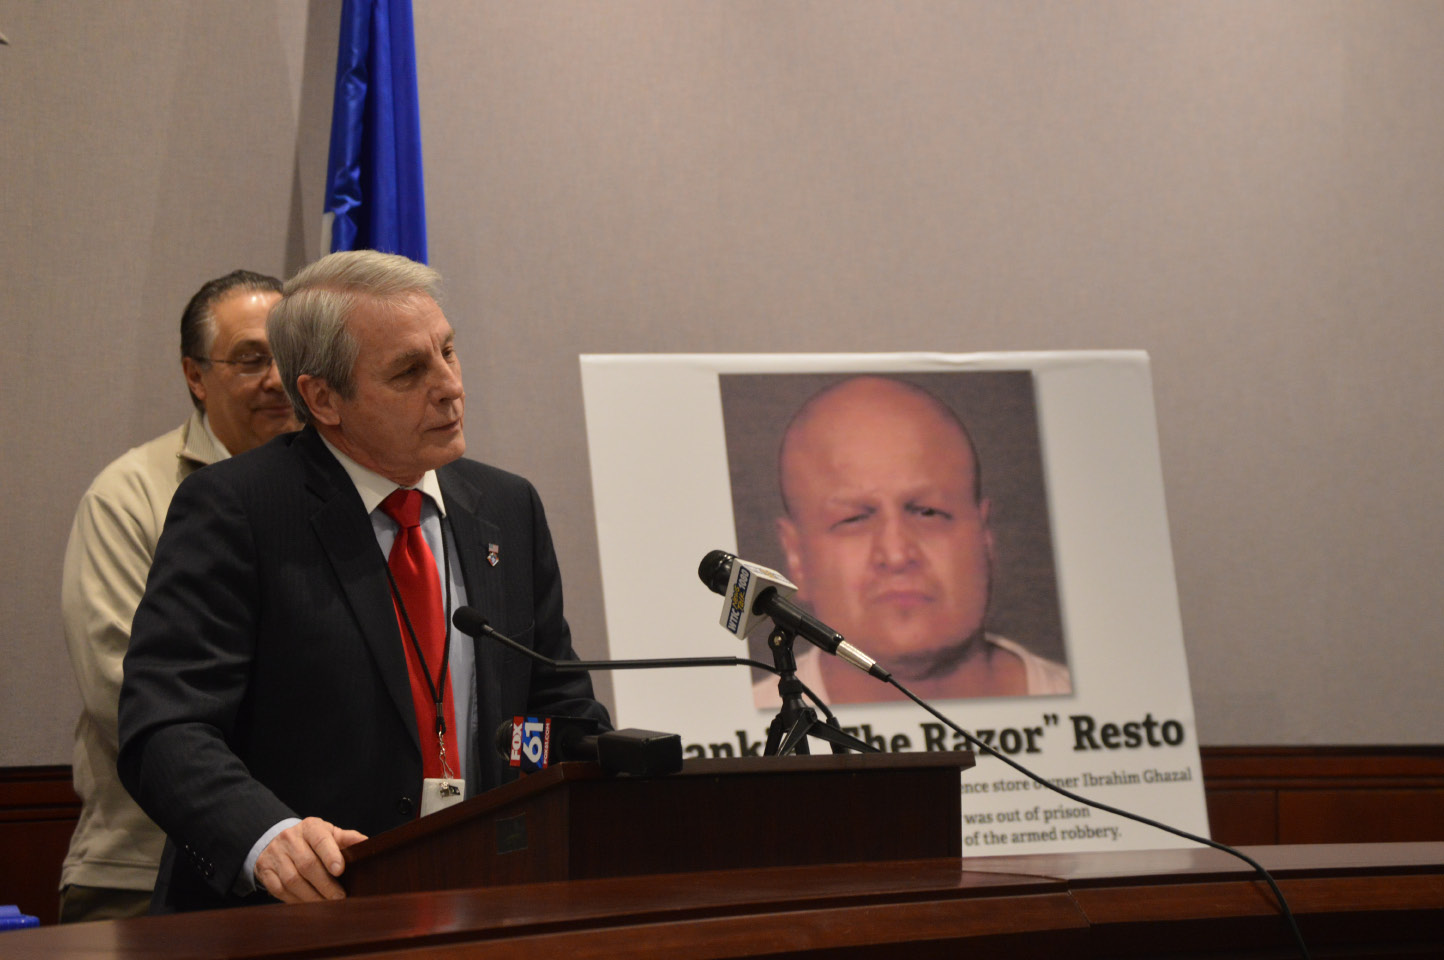 Sen. Len Suzio, R-Meriden, discusses criminal justice reform during a press conference at the Capitol on Monday, March 20, 2017. | Mike Savino, Record-Journal staff